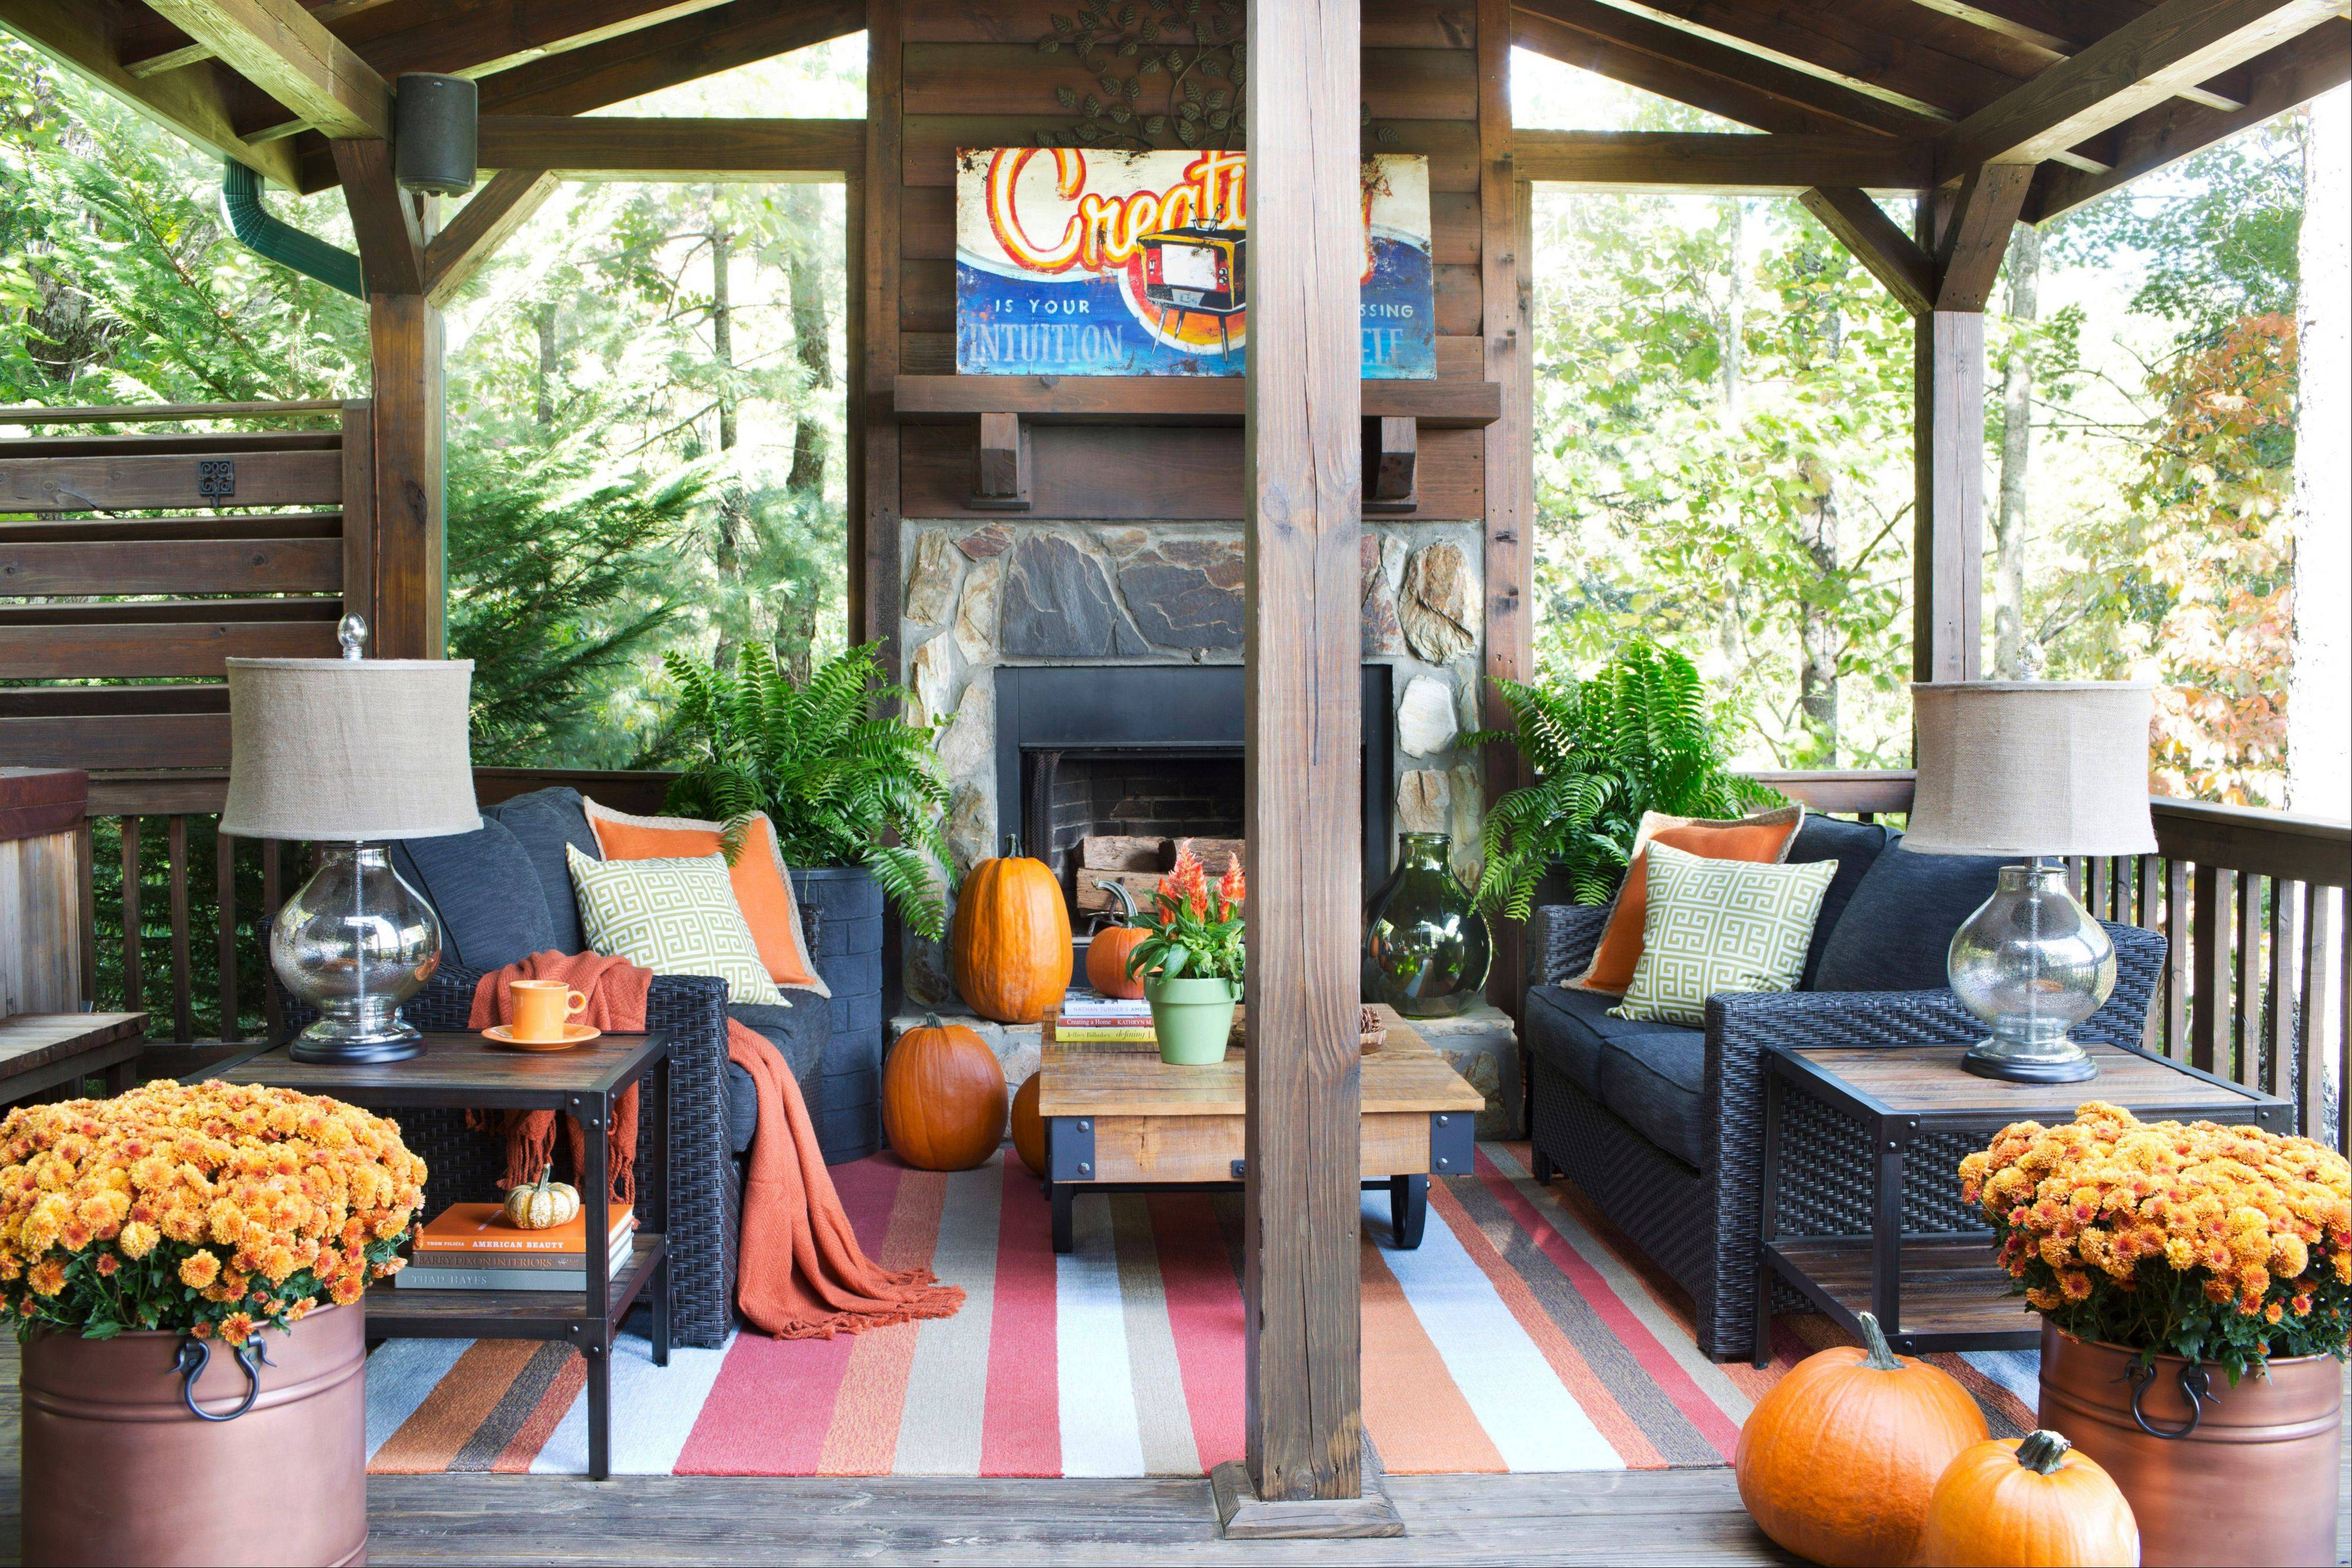 To ensure the outdoor living space of his mountain house stays warm and welcoming during the colder months, designer Brian Patrick Flynn chose woven blend upholstery for his seating, and a wool and acrylic blend indoor-outdoor area rug.